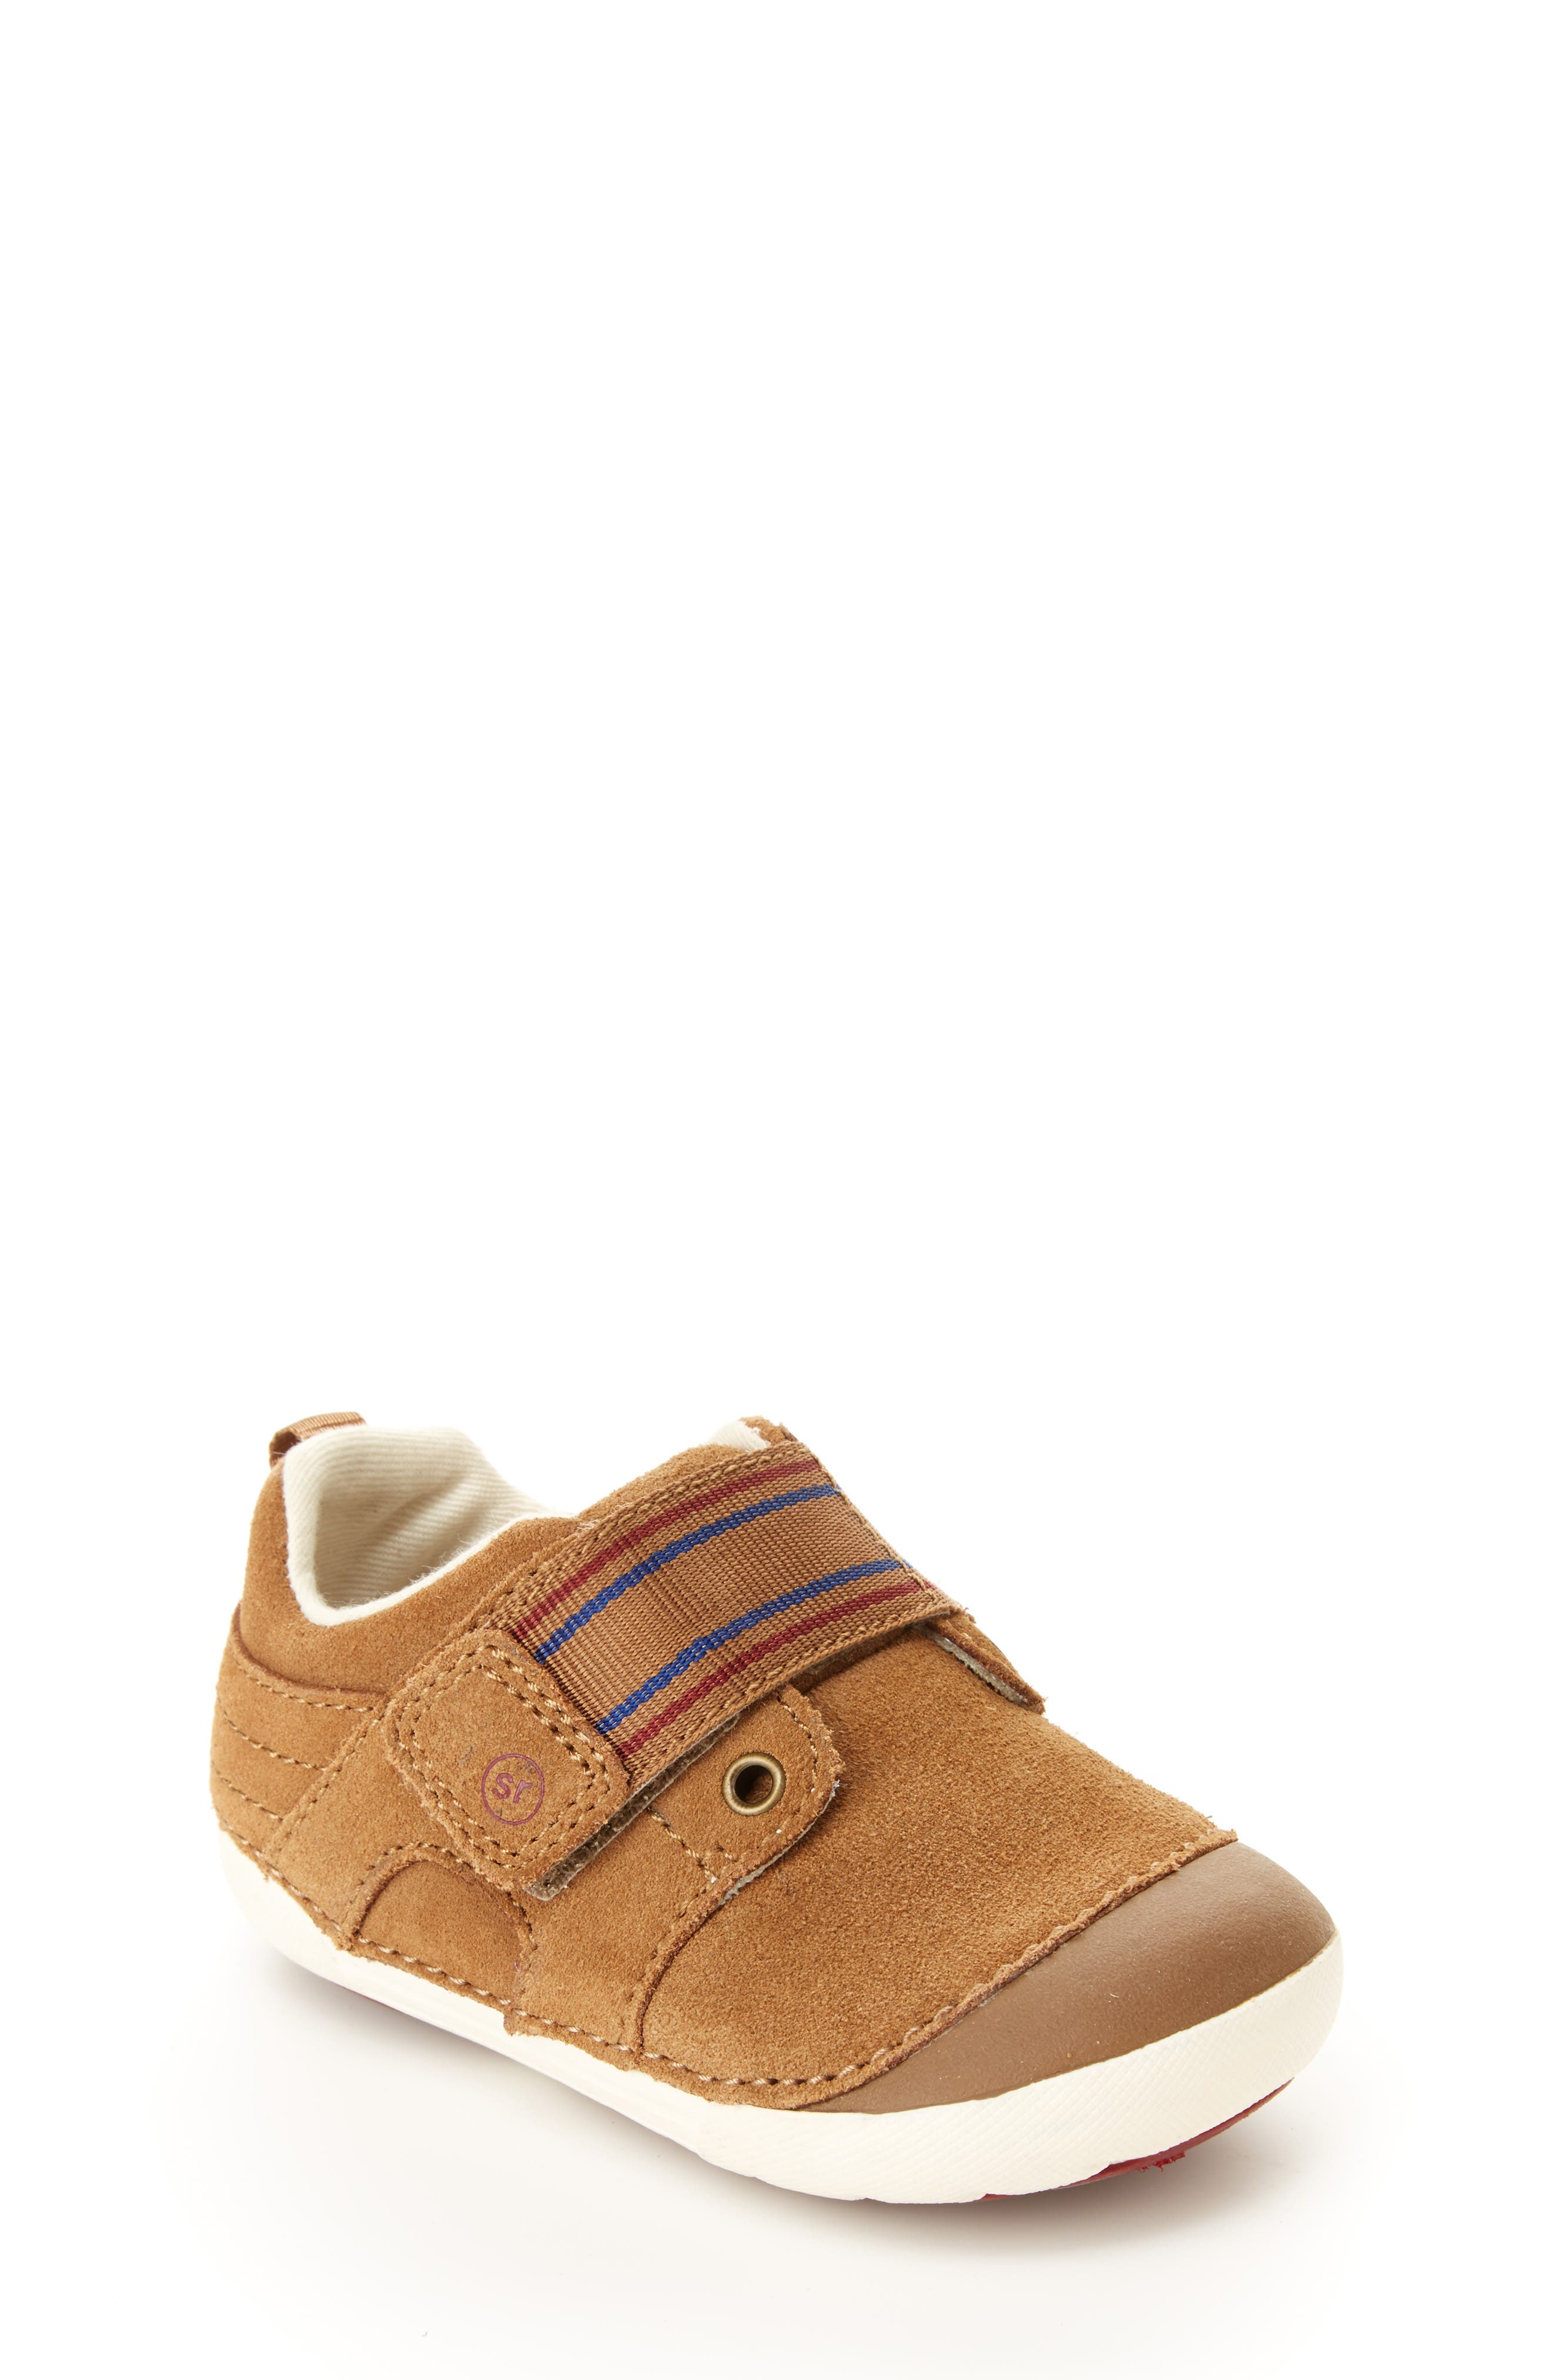 STRIDE RITE, Soft Motion<sup>™</sup> Cameron Sneaker, Main thumbnail 1, color, BROWN